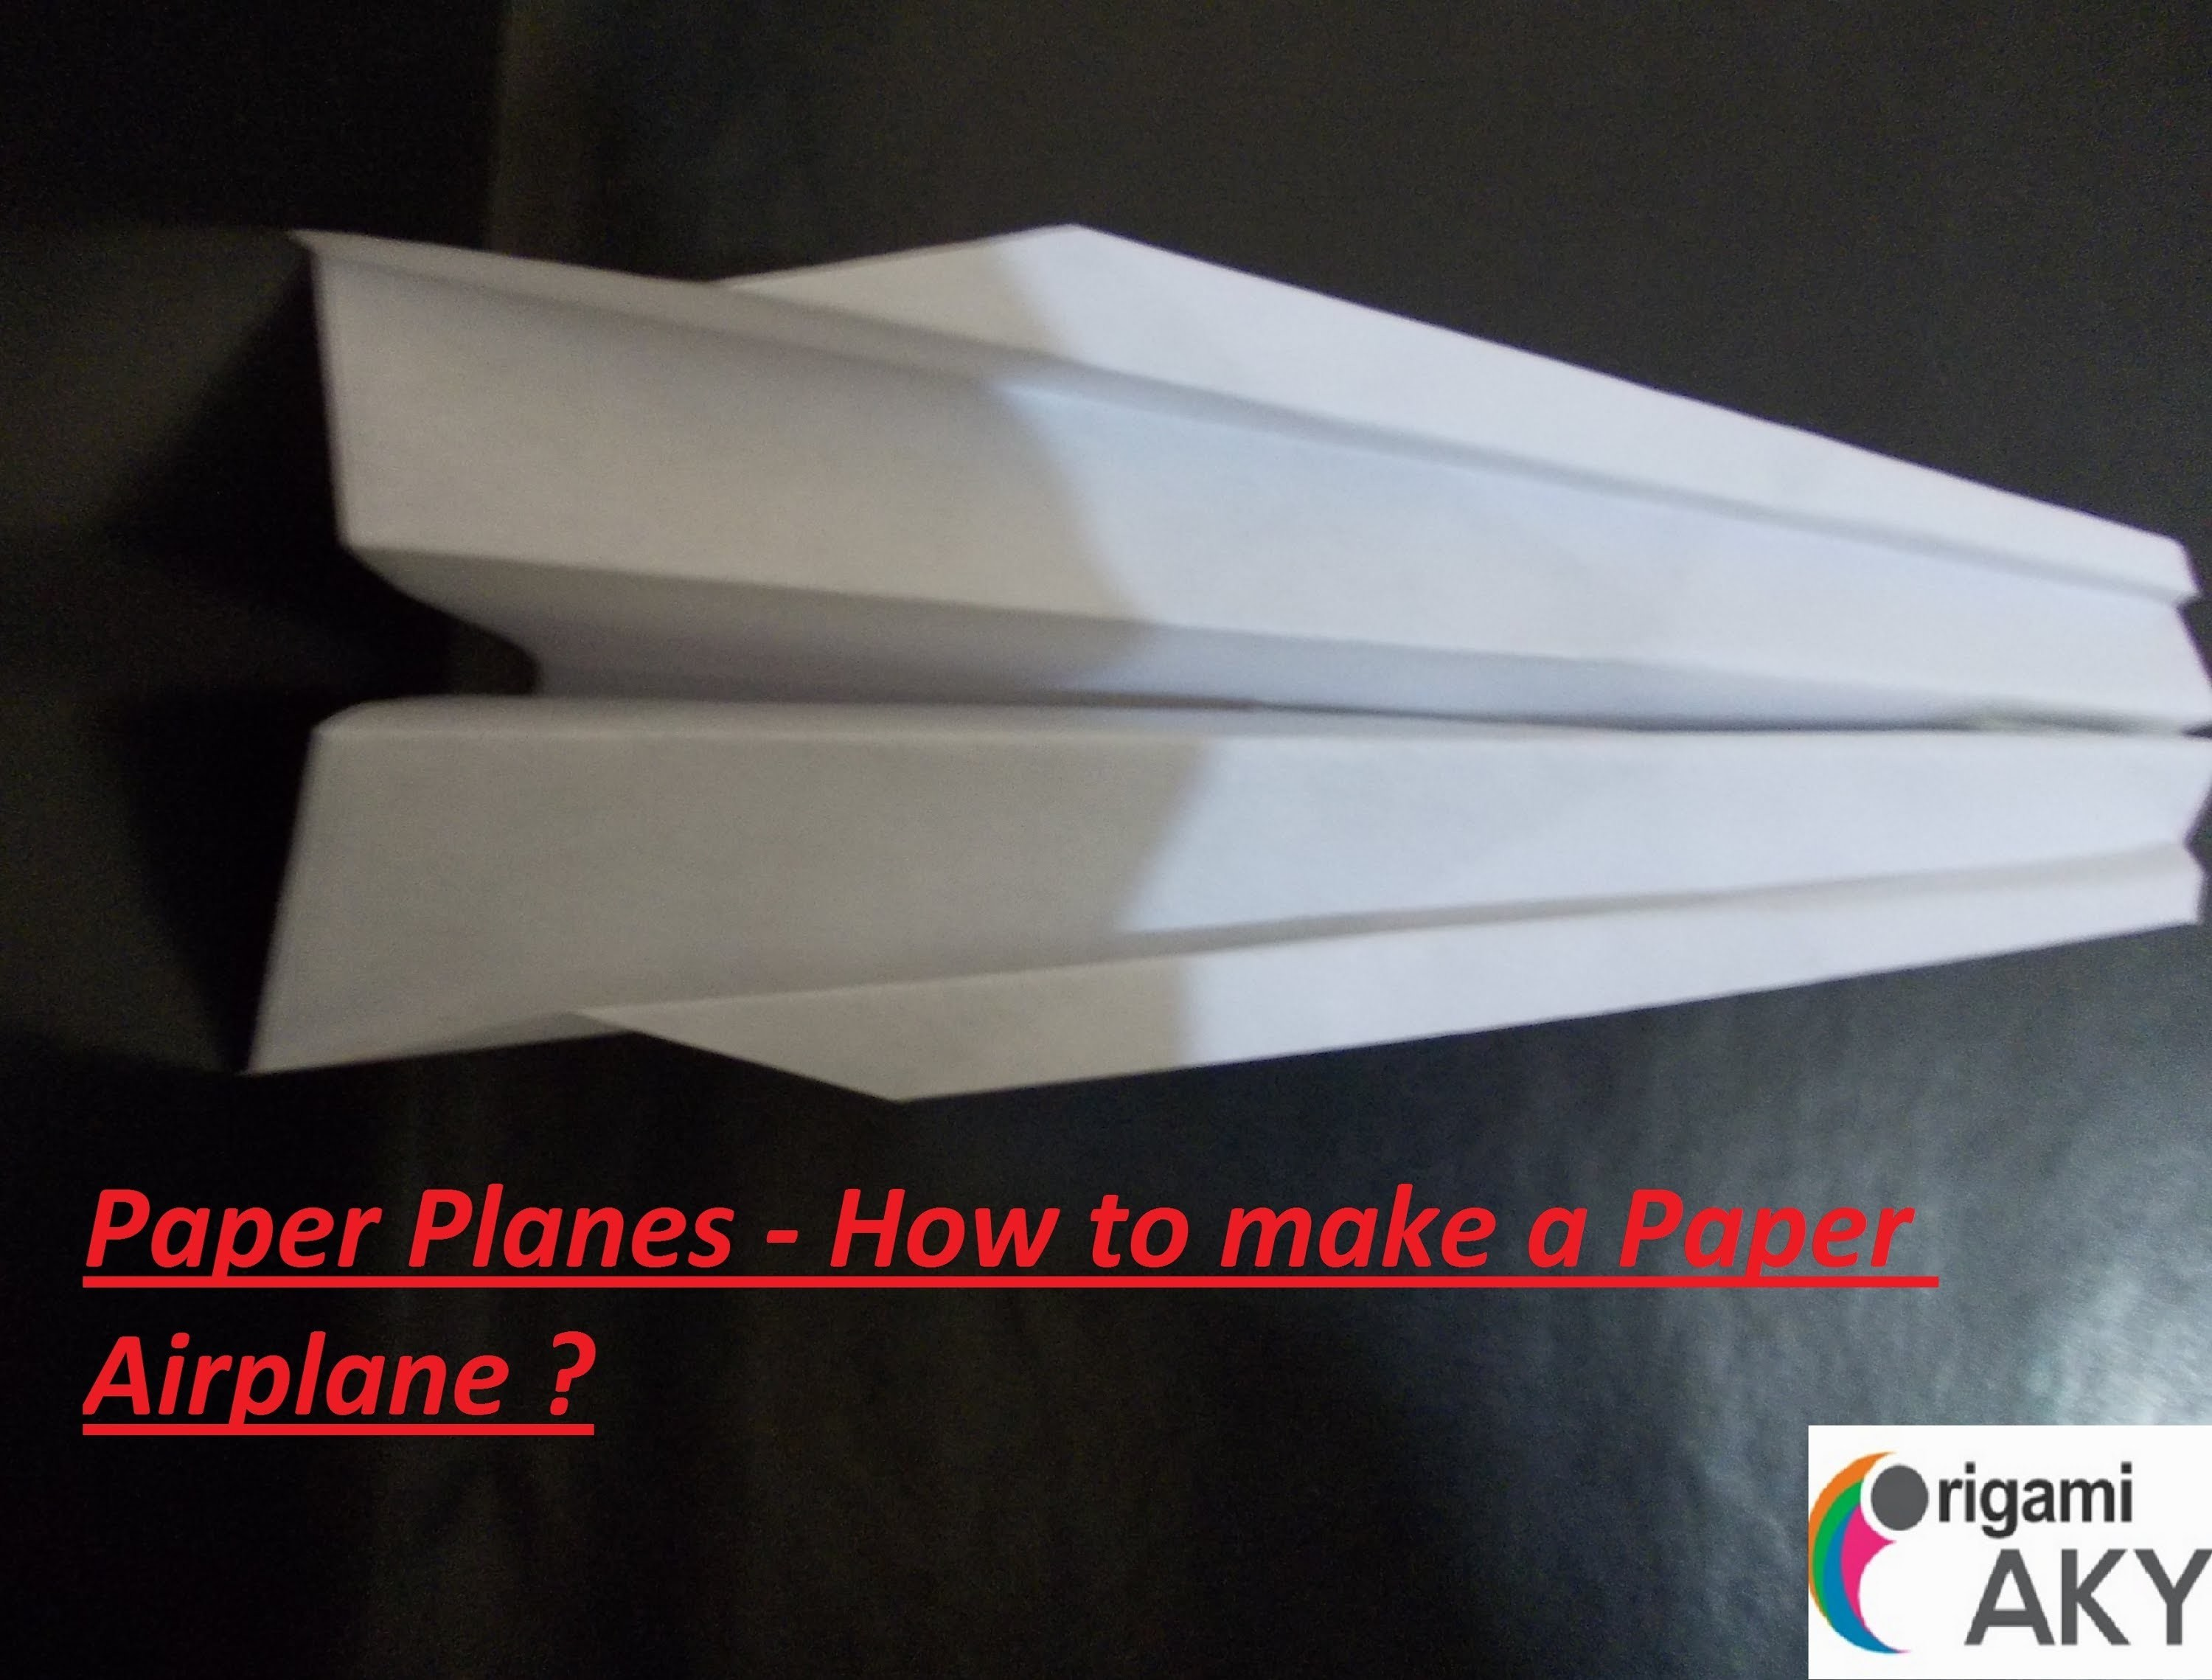 Paper Planes - How to make a Paper Airplane ? (1)